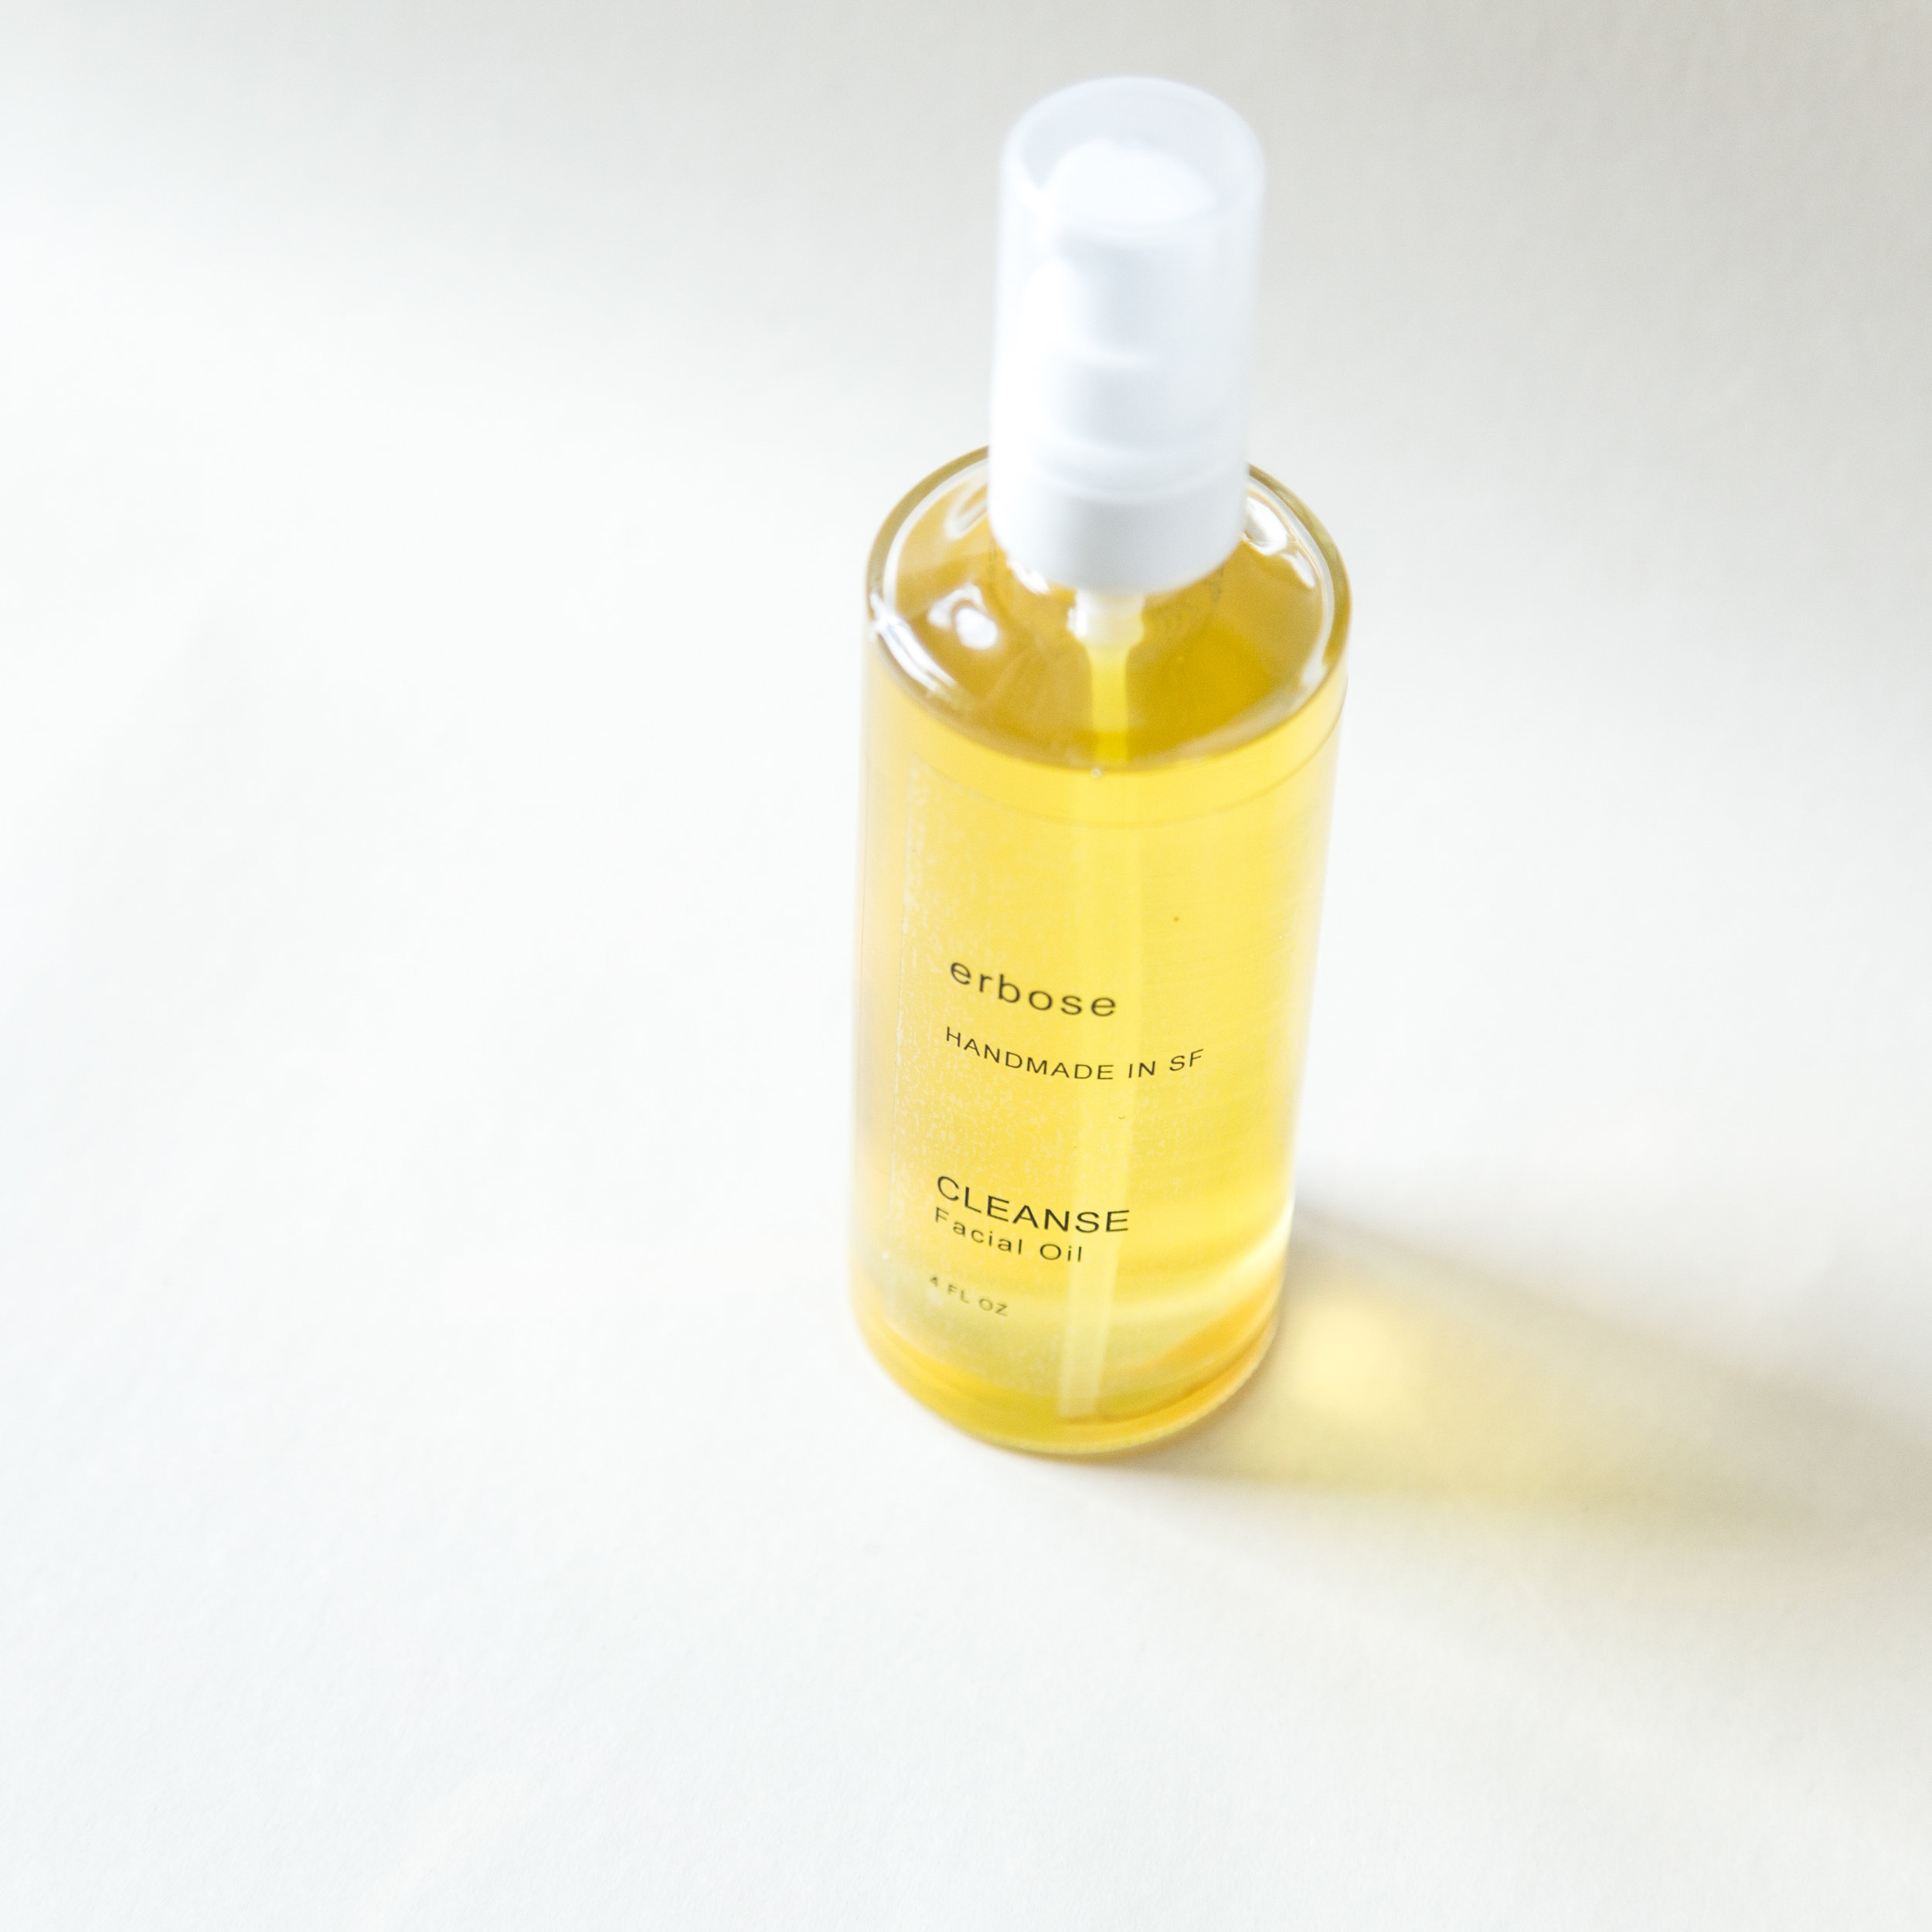 Cleanse Oil